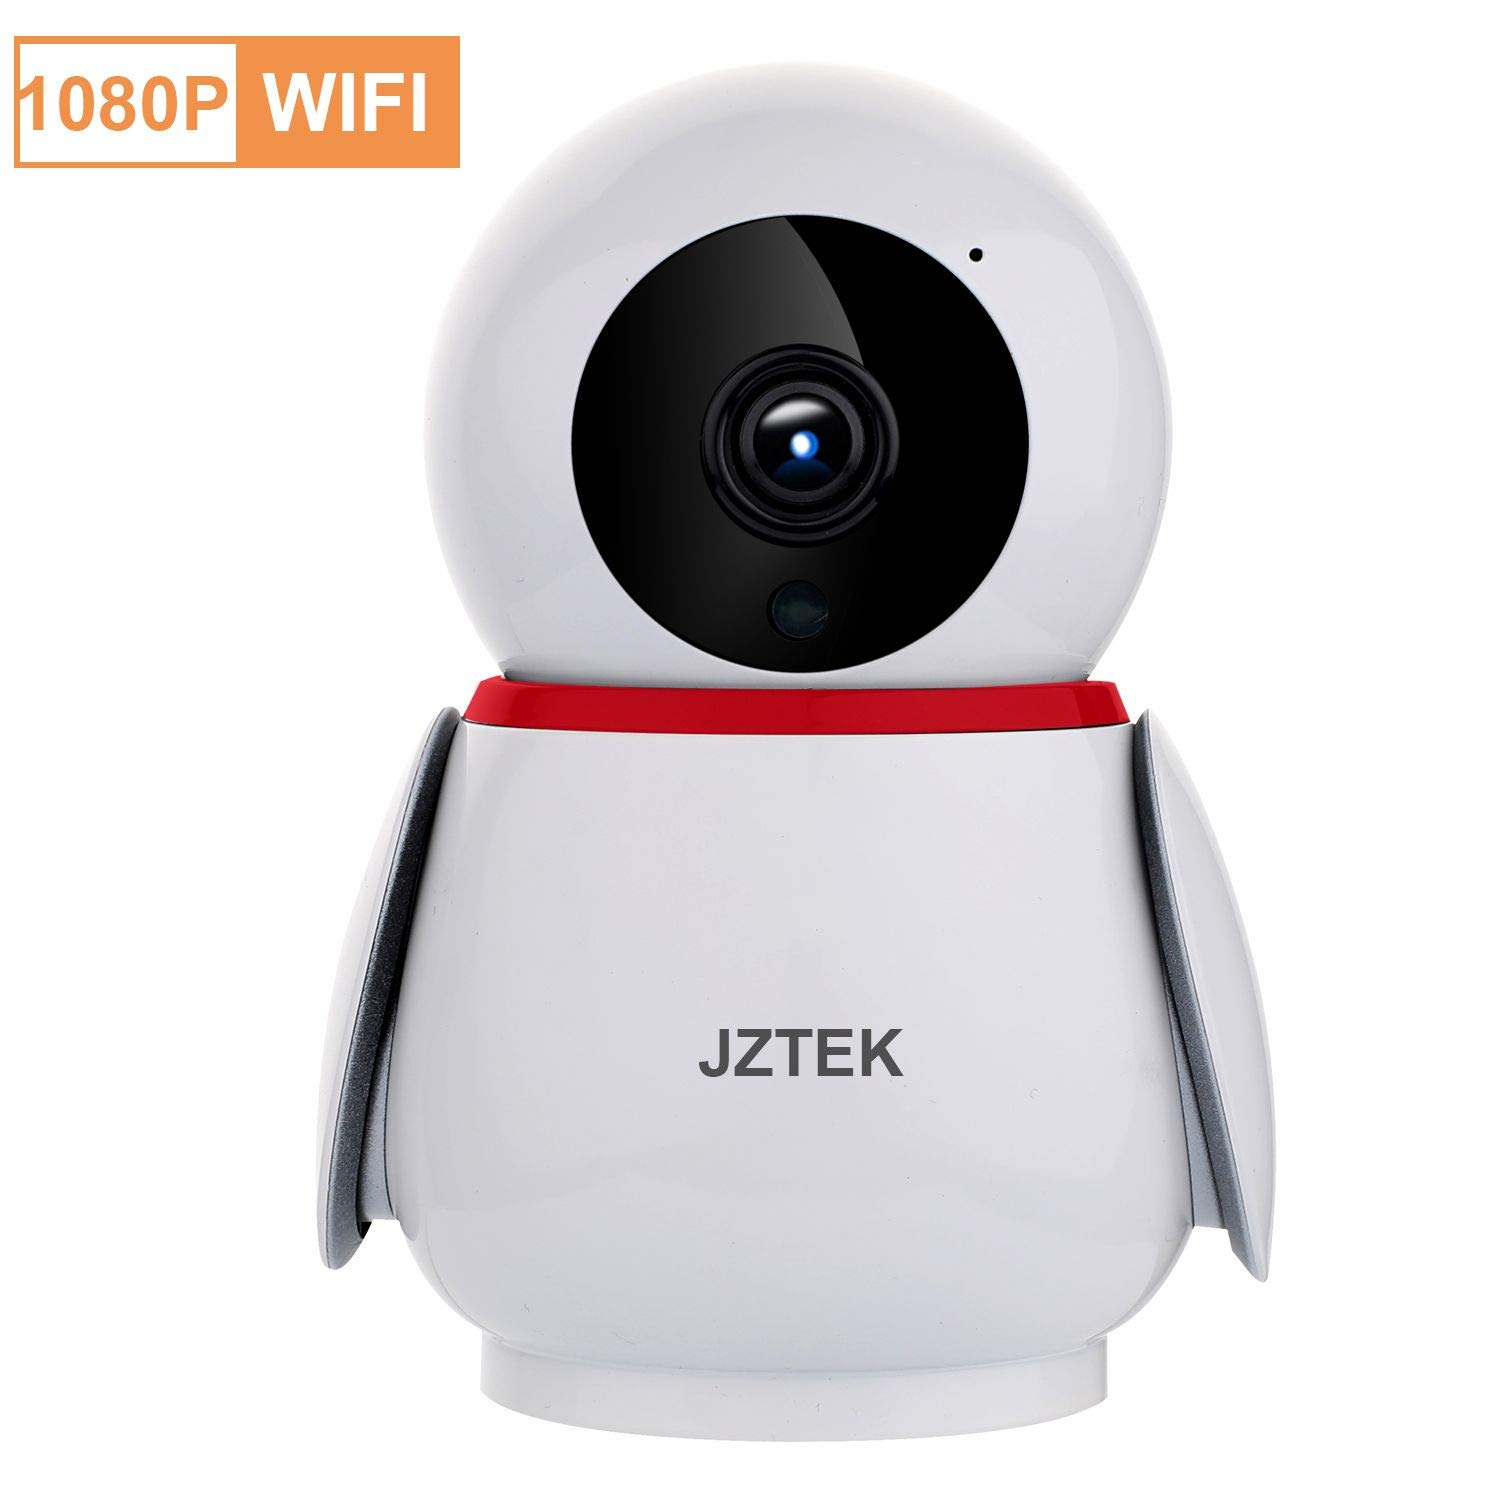 Security Camera 1080P WiFi Pet Camera, WiFi Home Security Nanny Camera, Super Wide View Angle Nanny Cam, PIR Motion Detection Night Vision Two Way Audio for Pet Elder Baby by JZTEK